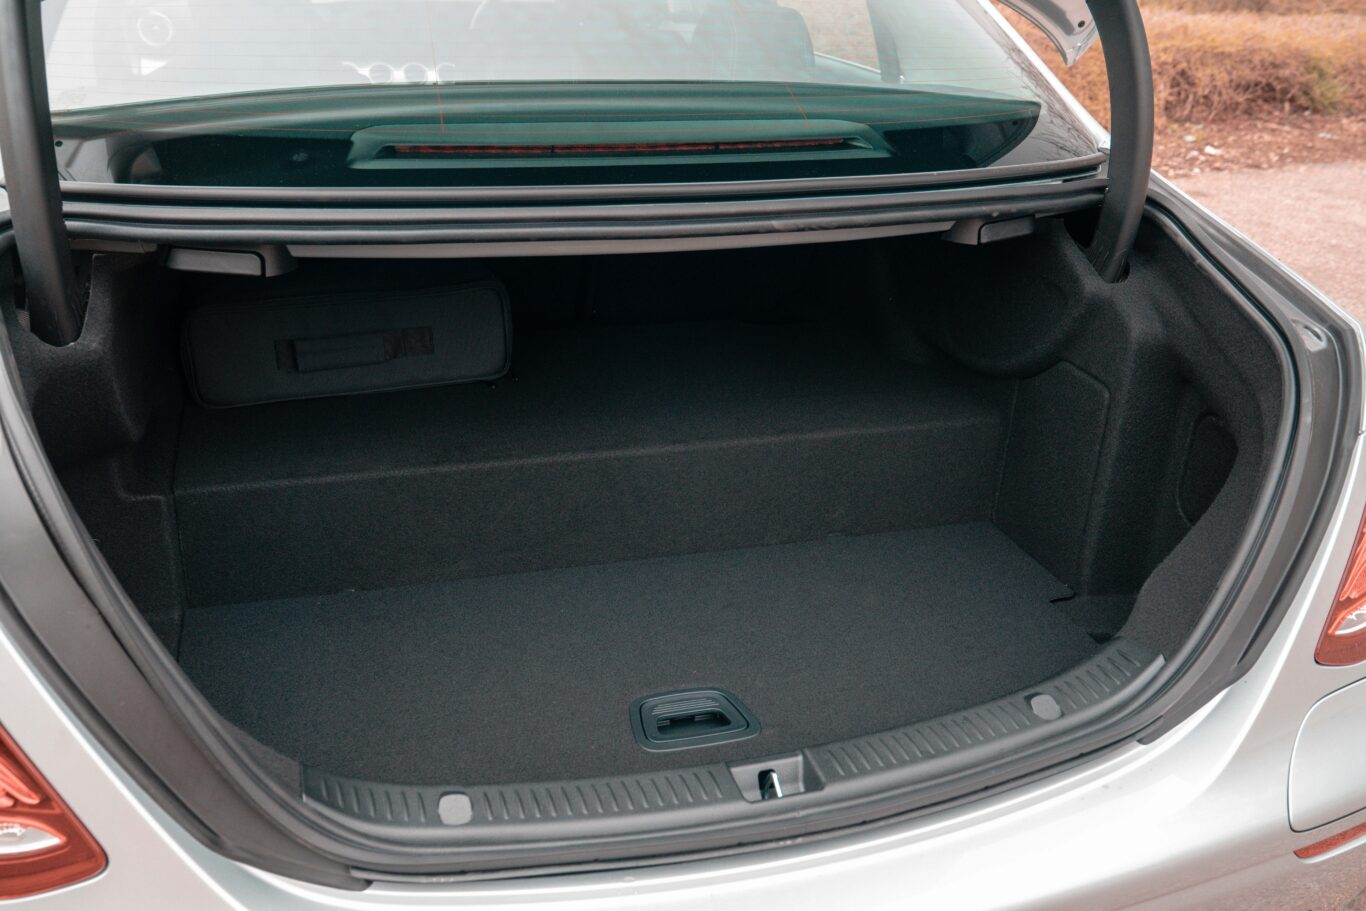 Boot space is reduced as a result of the batteries located in the boot floor